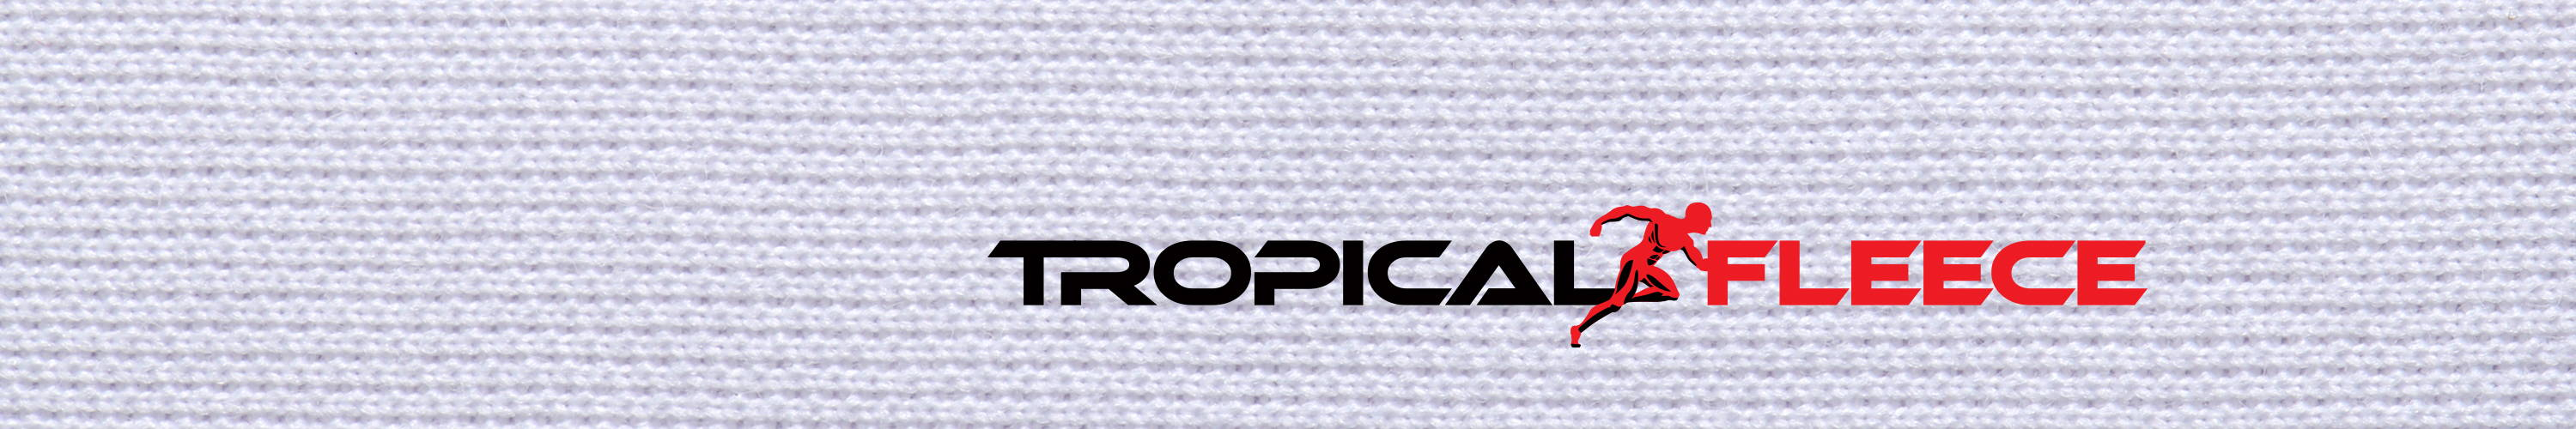 A premium blend of polyester and cotton, Tropical Fleece is the most robust of Valour's polar fleece fabrics.